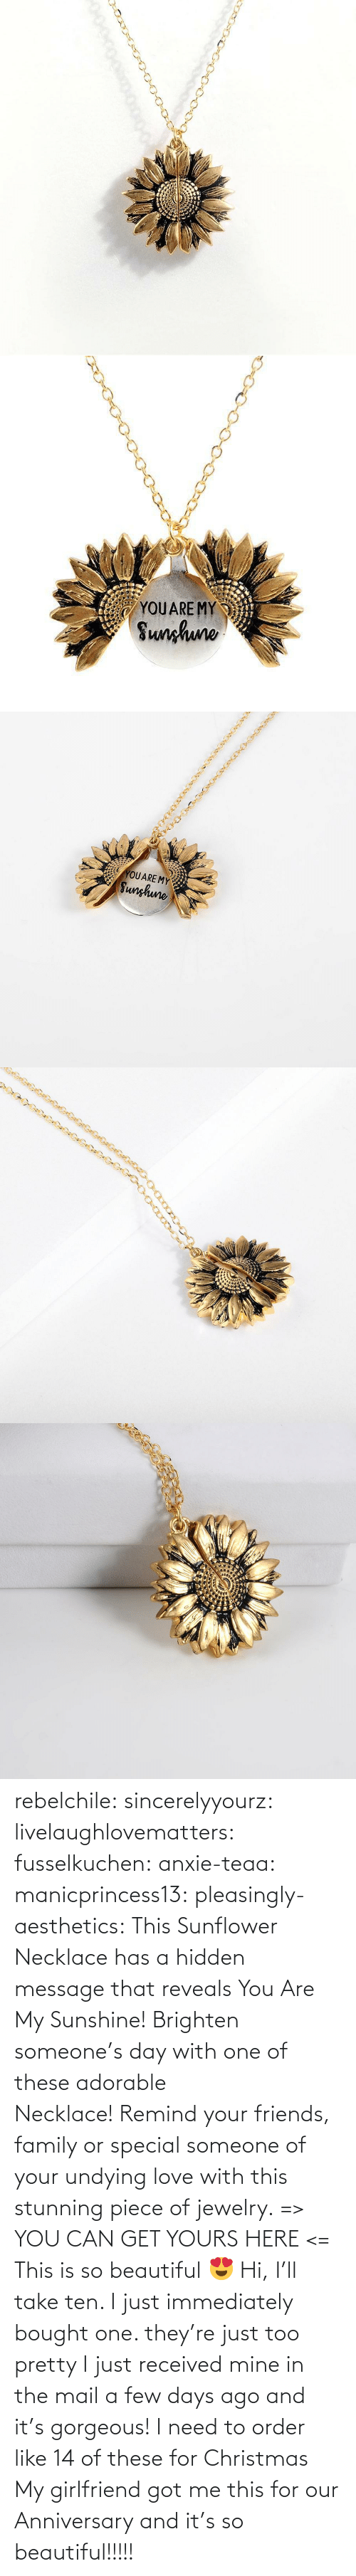 Beautiful, Christmas, and Family: YOUARE MY  Sunhuno   YOUARE MY  Sunghune rebelchile:  sincerelyyourz:  livelaughlovematters:  fusselkuchen:  anxie-teaa:   manicprincess13:   pleasingly-aesthetics:  This Sunflower Necklace has a hidden message that reveals You Are My Sunshine! Brighten someone's day with one of these adorable Necklace! Remind your friends, family or special someone of your undying love with this stunning piece of jewelry. => YOU CAN GET YOURS HERE <=   This is so beautiful 😍    Hi, I'll take ten.    I just immediately bought one. they're just too pretty   I just received mine in the mail a few days ago and it's gorgeous!   I need to order like 14 of these for Christmas    My girlfriend got me this for our Anniversary and it's so beautiful!!!!!